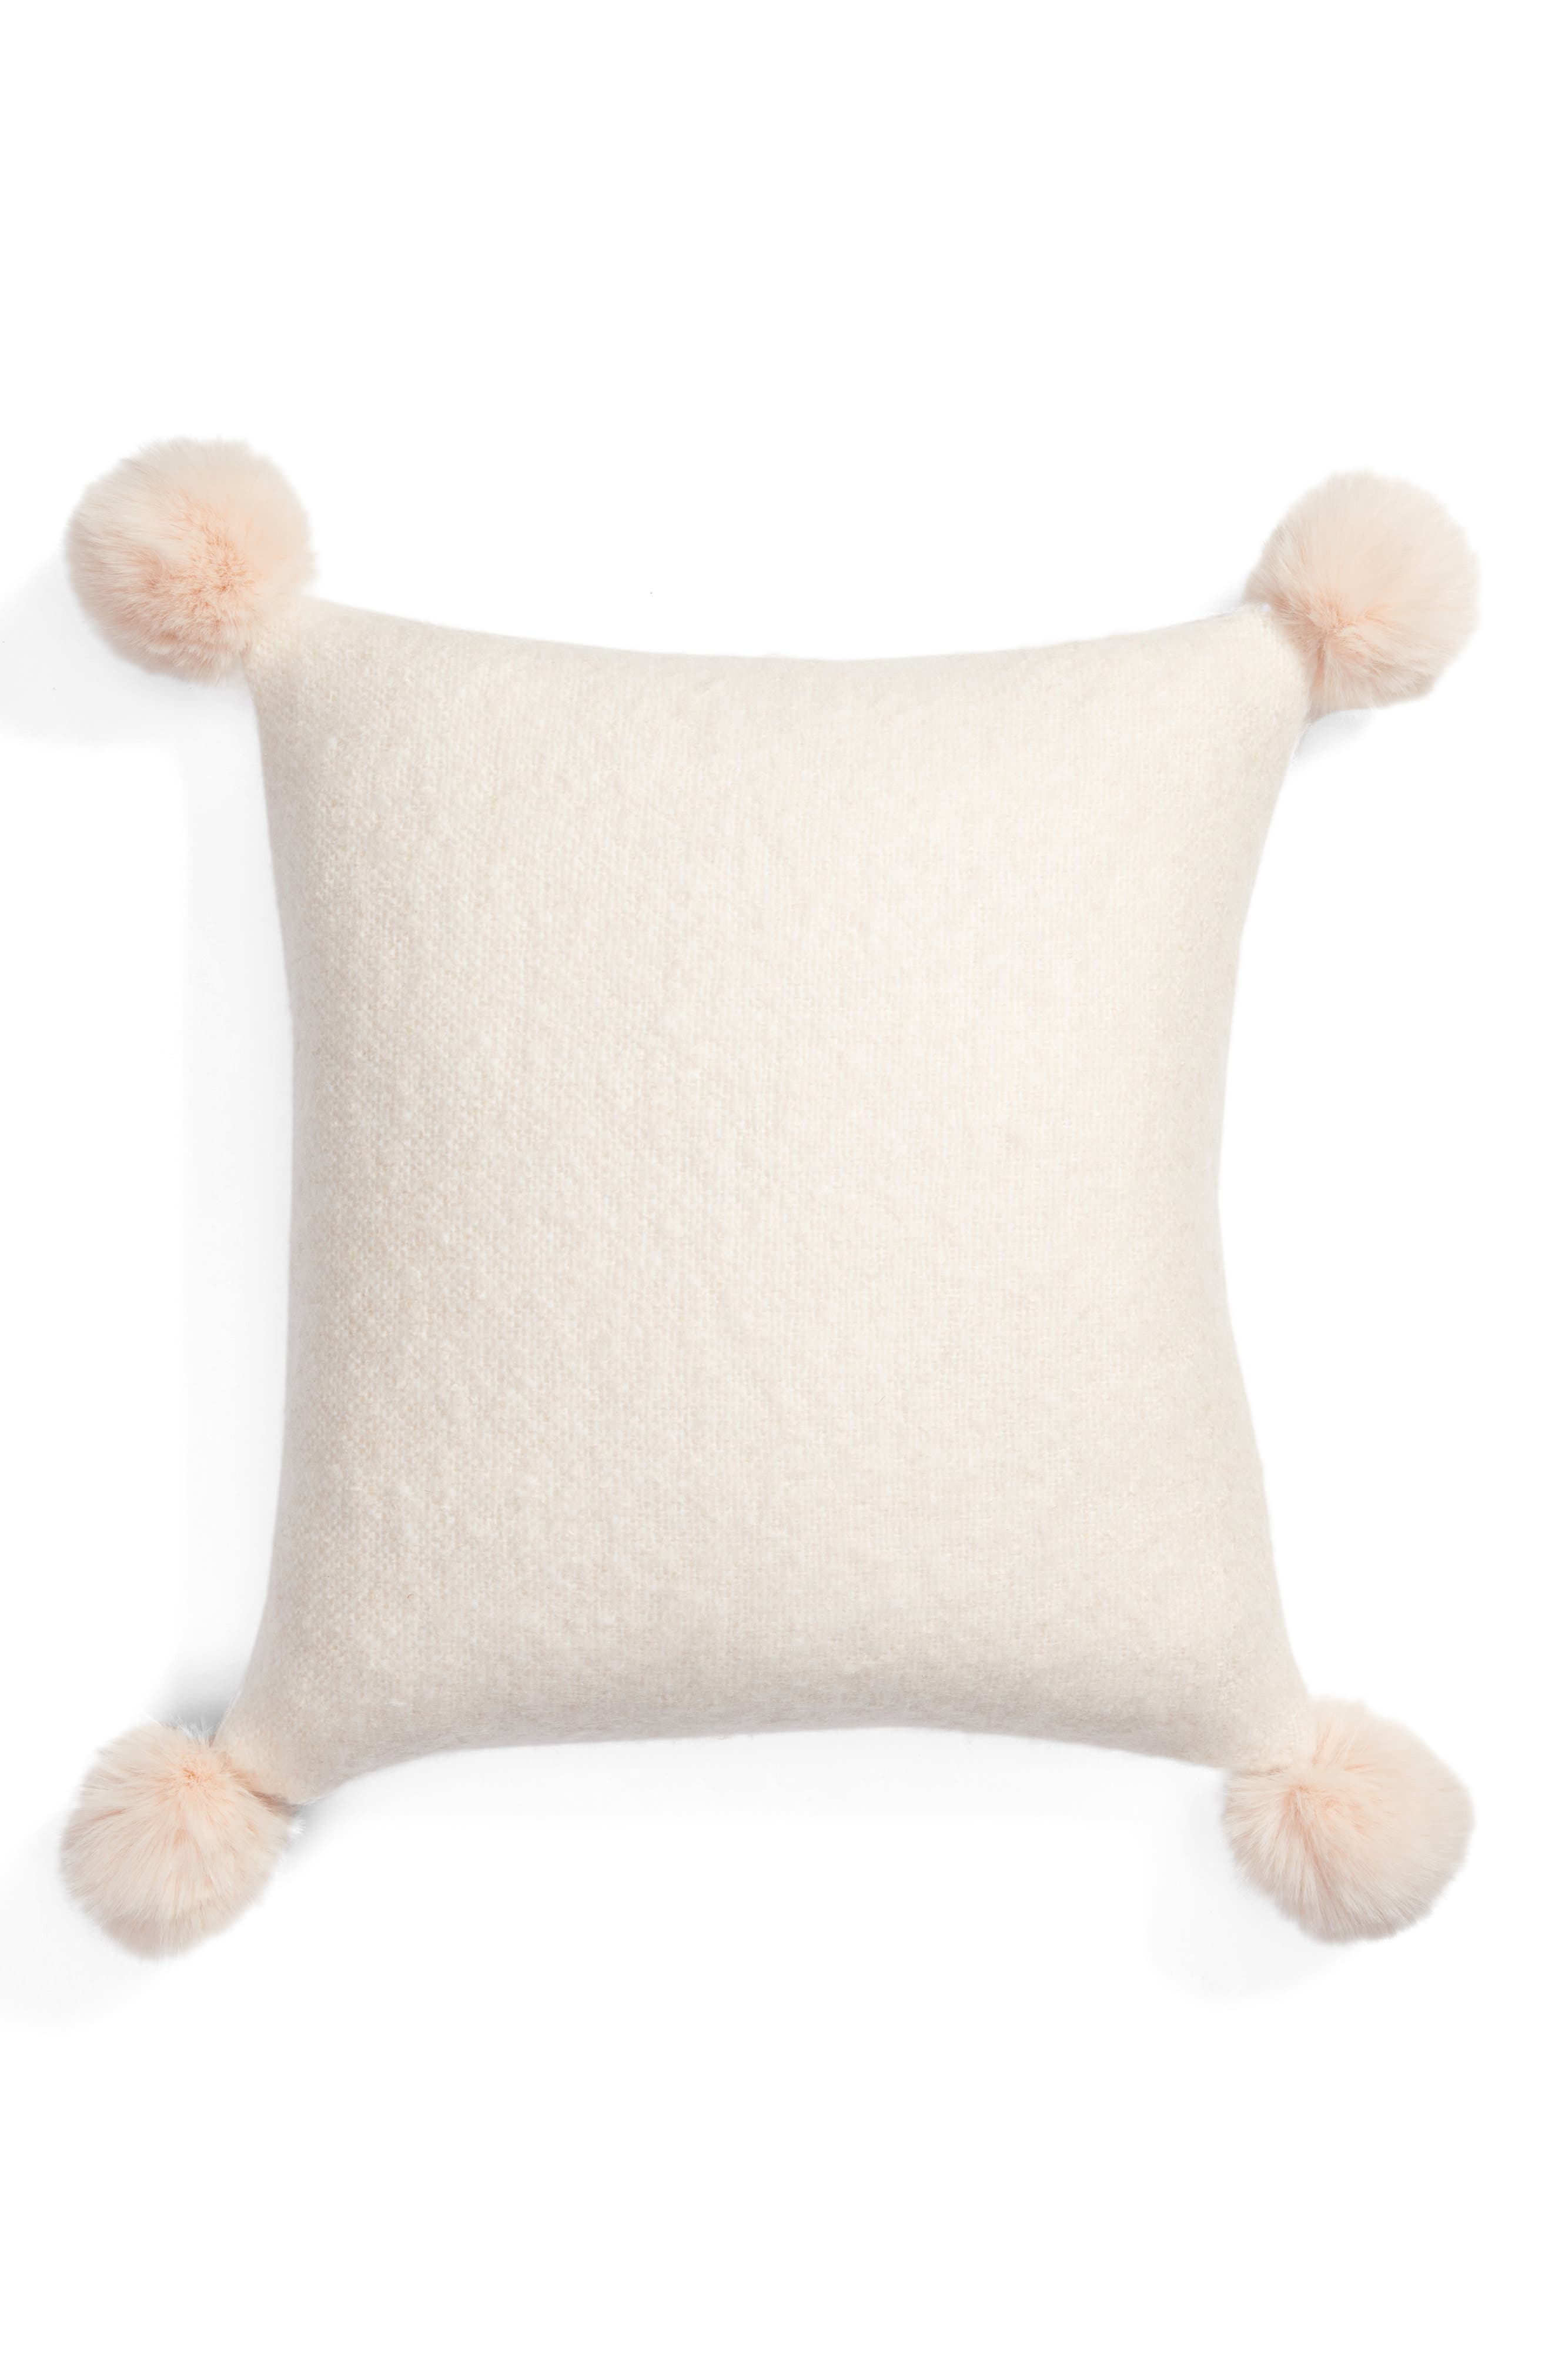 Brushed Accent Pillow with Pompoms,                         Main,                         color, Pink Peony Bud